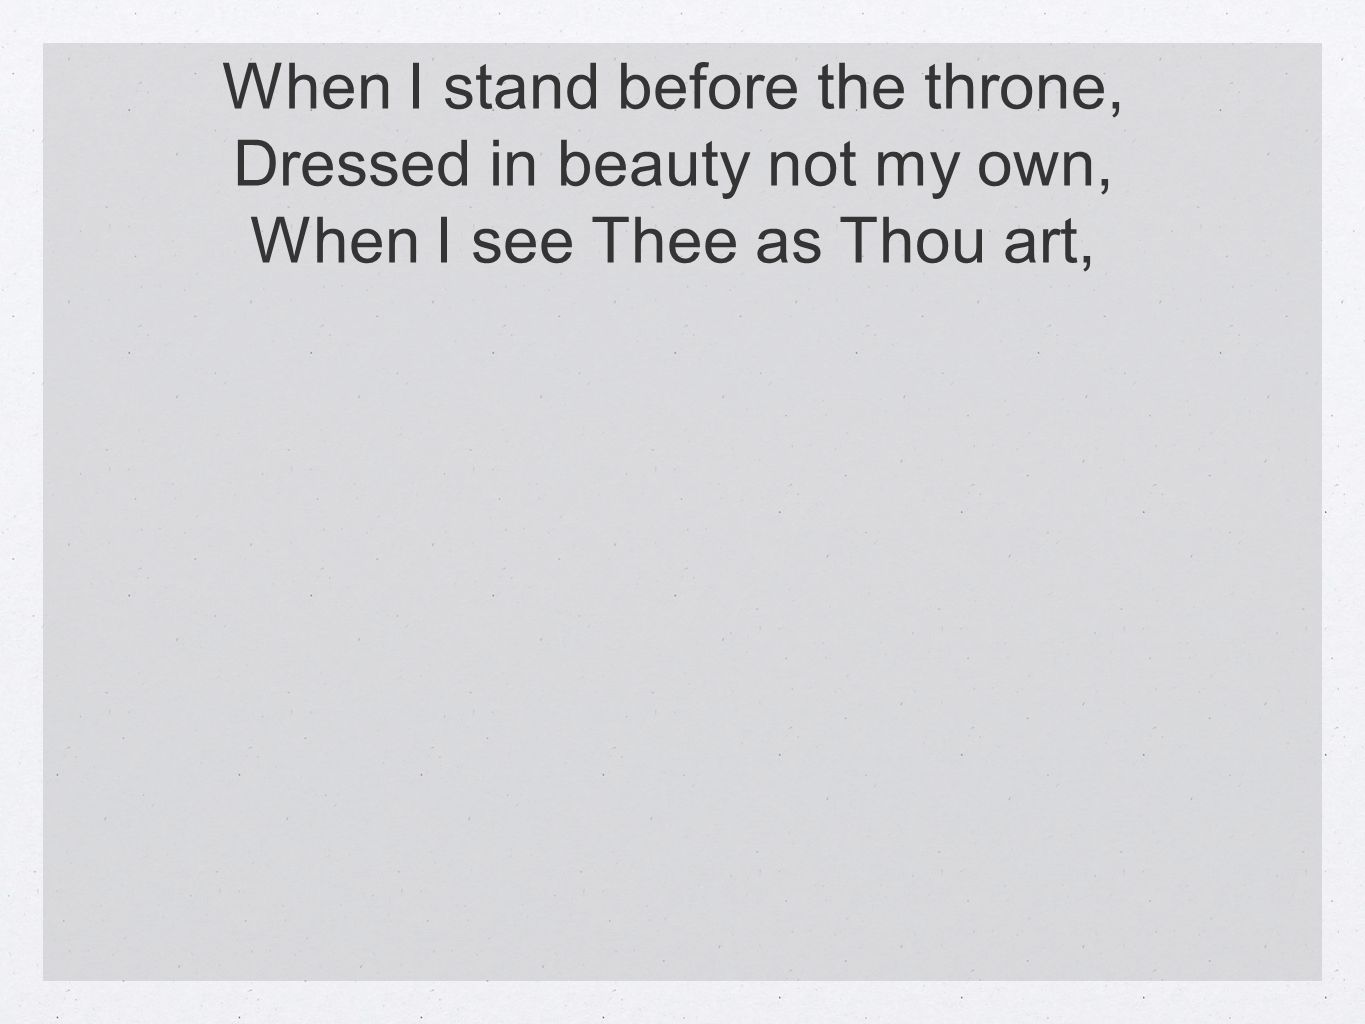 When I stand before the throne, Dressed in beauty not my own, When I see Thee as Thou art,